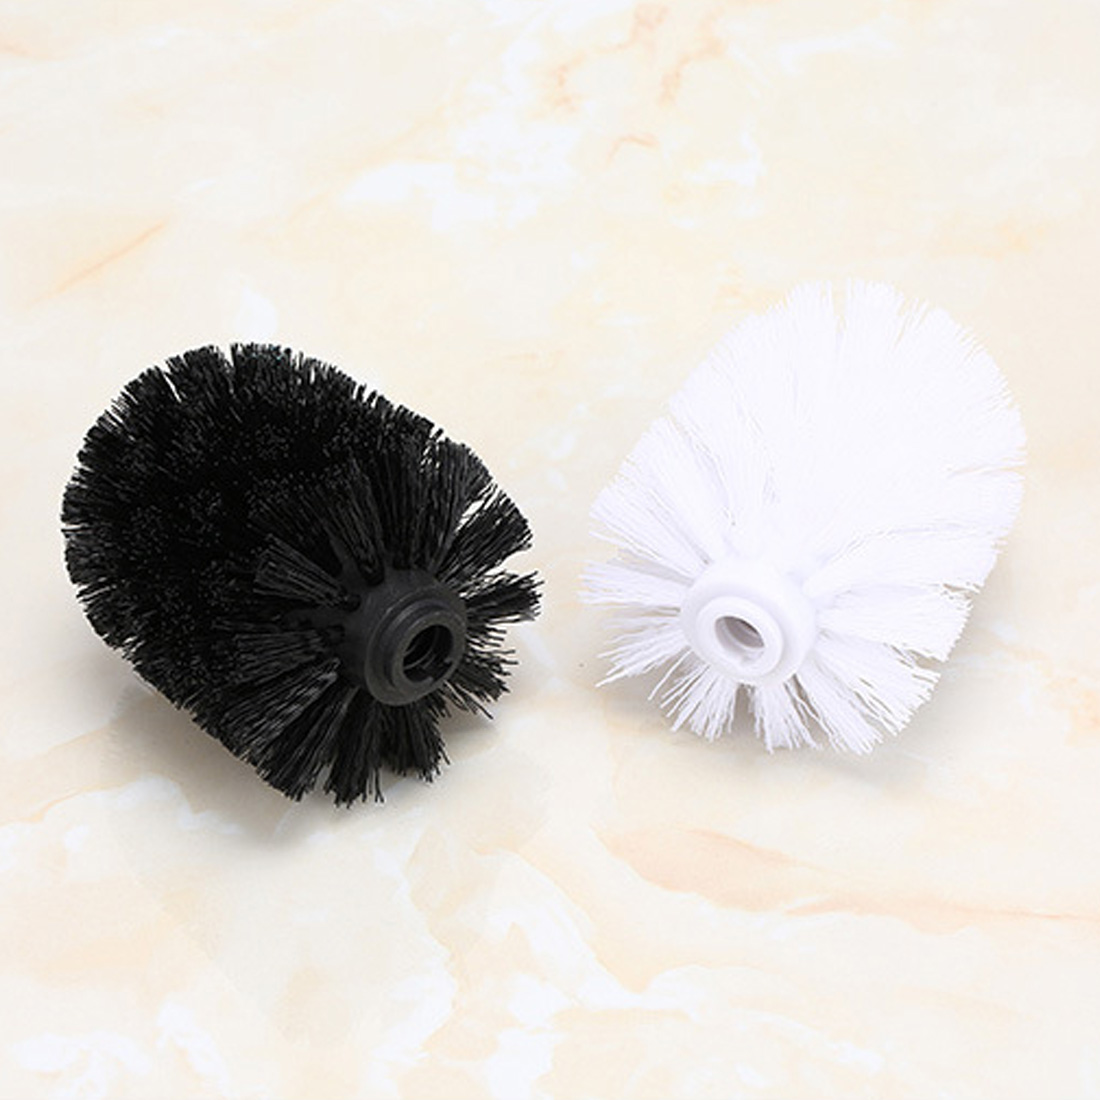 Replace Brush Head Cleaning Brush Head Toilet Brush Head Universal Holder For Toilet Bathroom WC Clean Tool Accessory